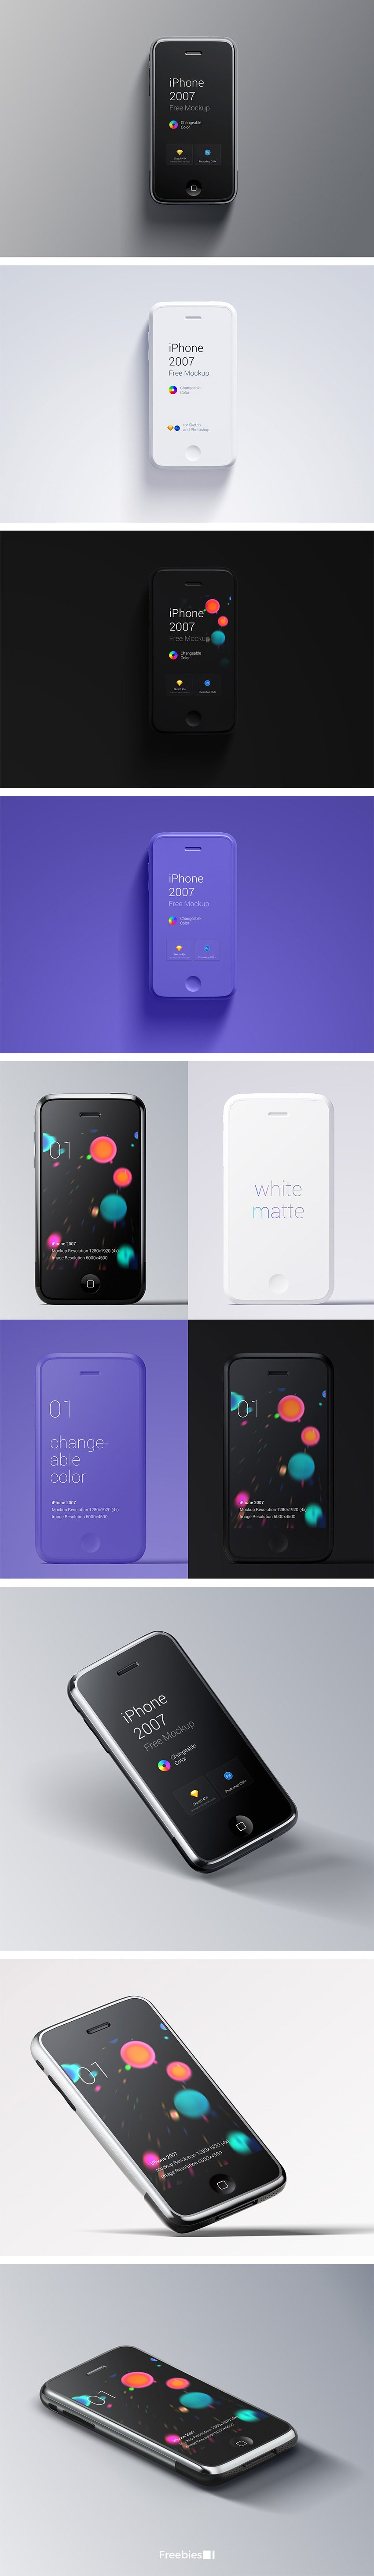 iPhone 1st GEN Free Mockup from 2007 - Original colors - Easy to Edit Mockup